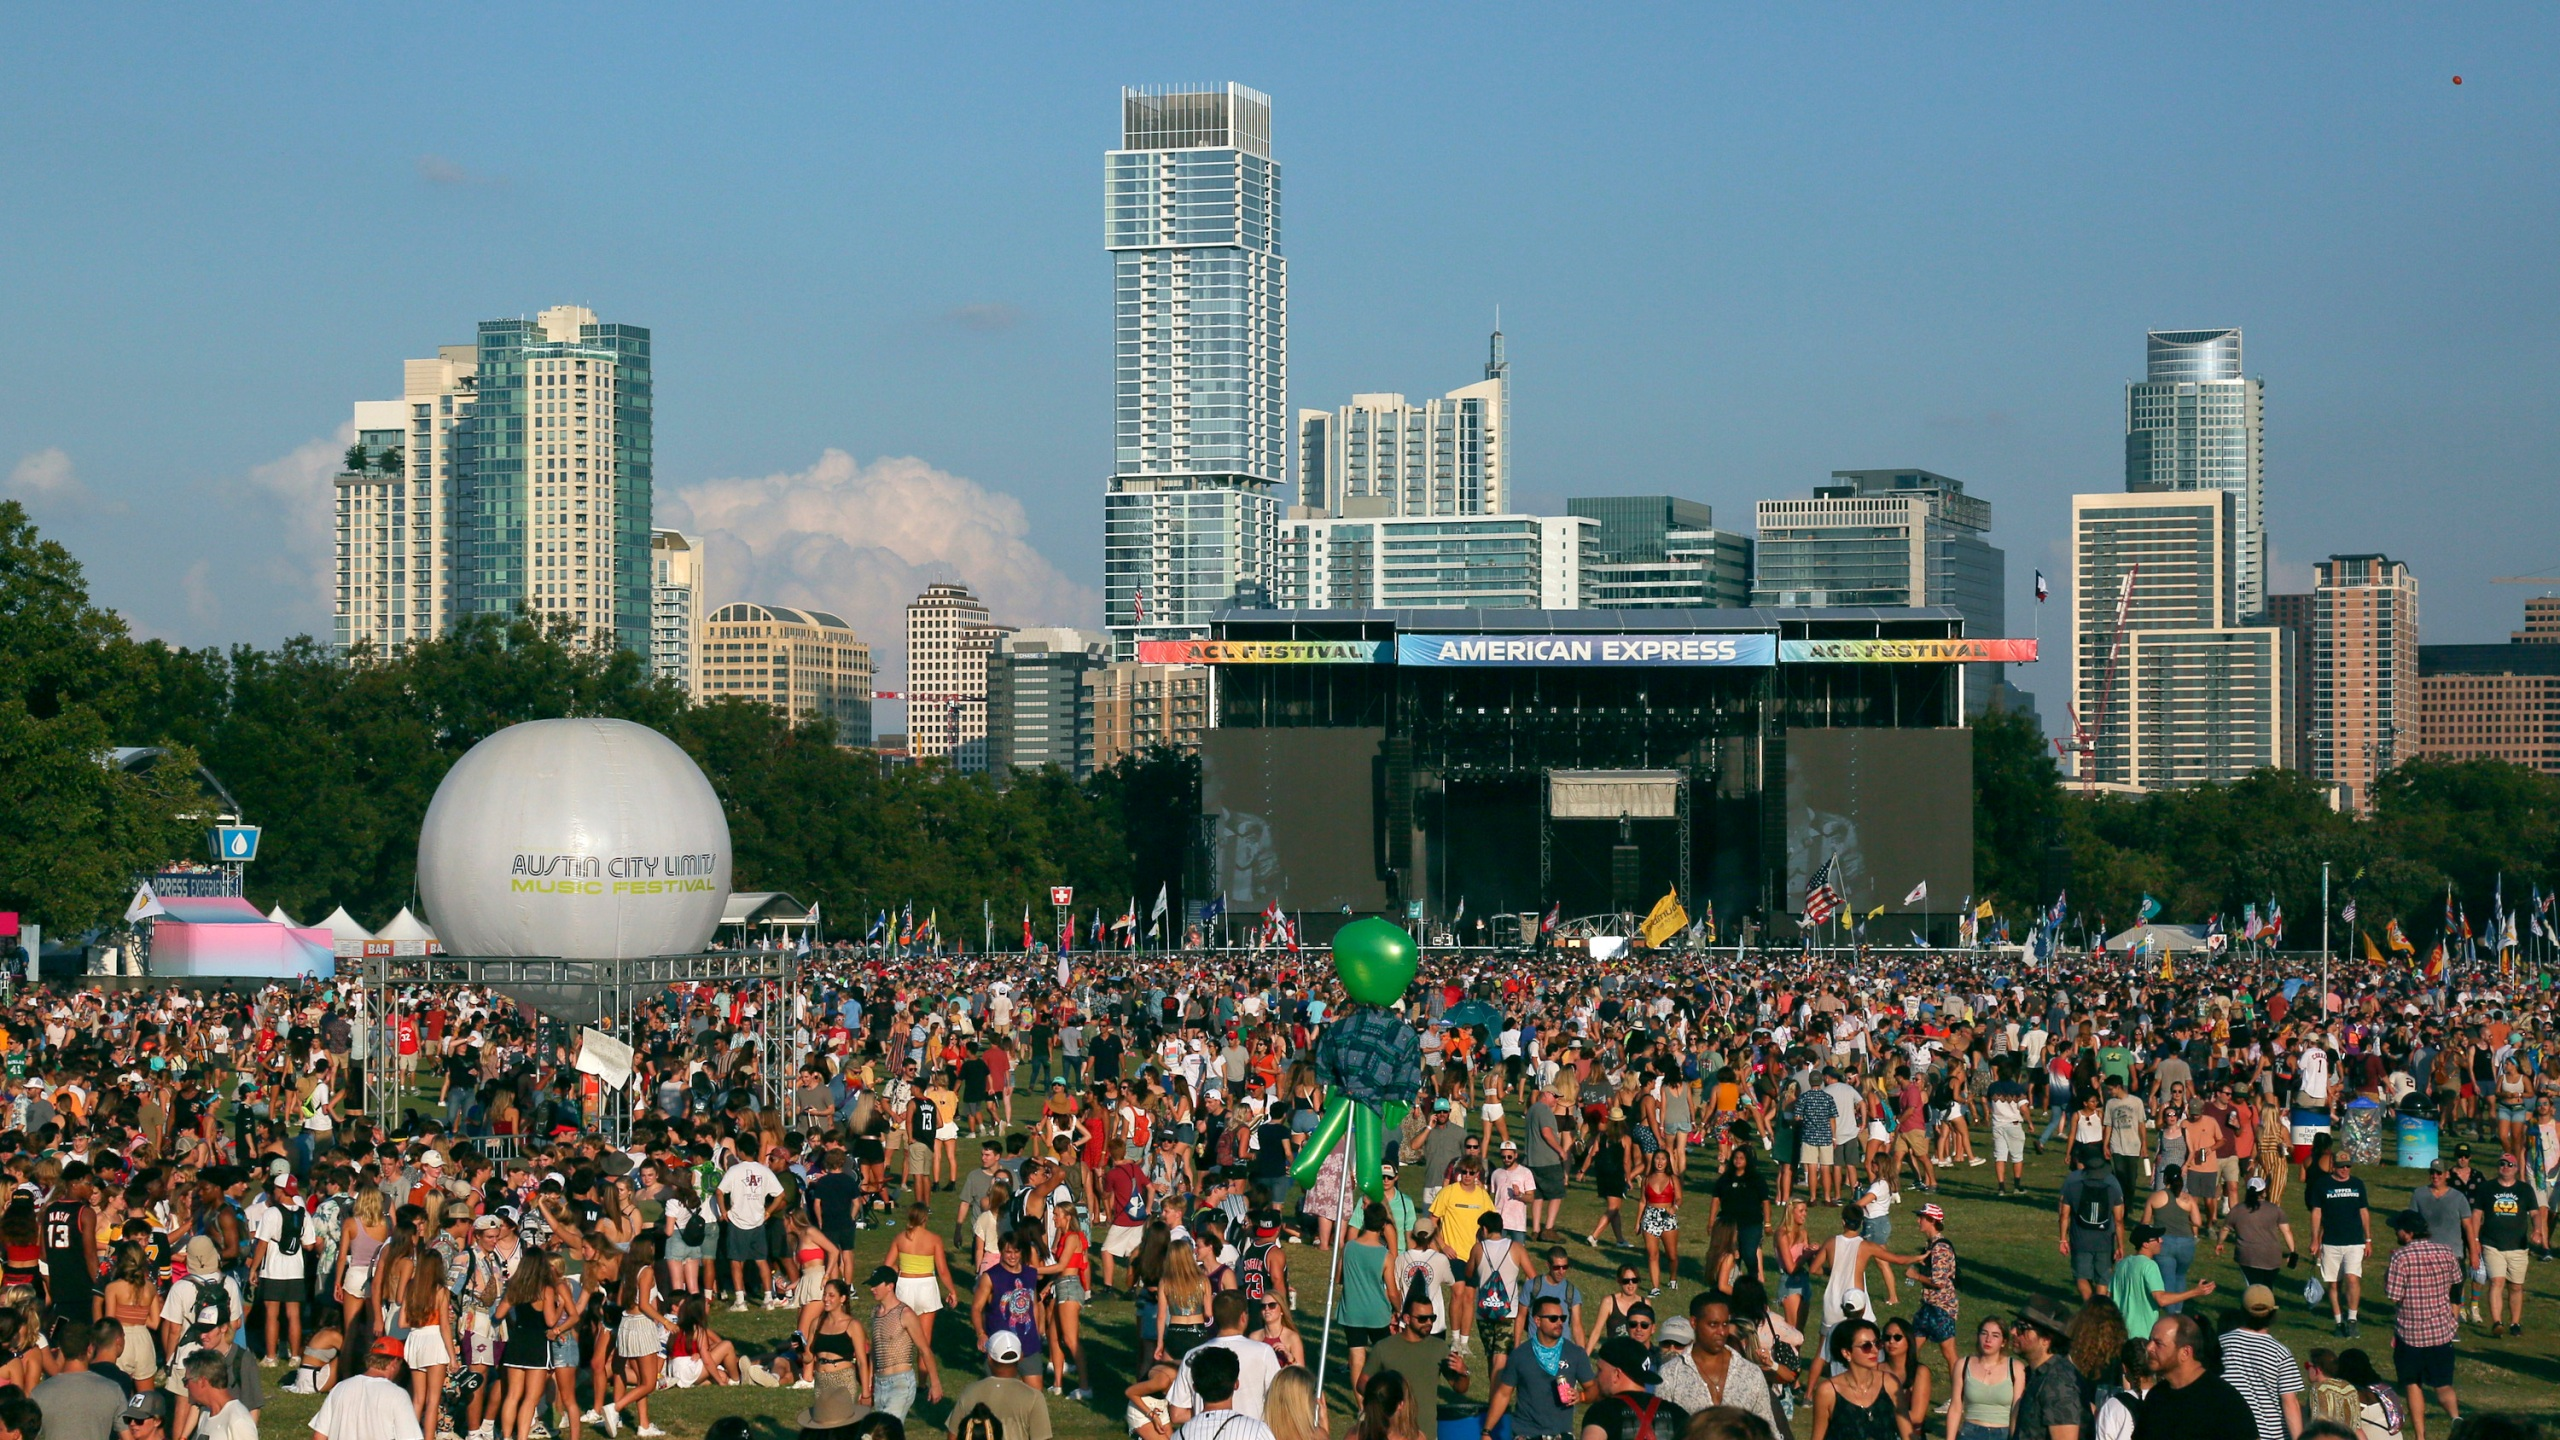 Festival attendees walk through Zilker Park during the first weekend of the Austin City Limits Music Festival on Friday, Oct. 4, 2019, in Austin, Texas. (Photo by Jack Plunkett/Invision/AP)